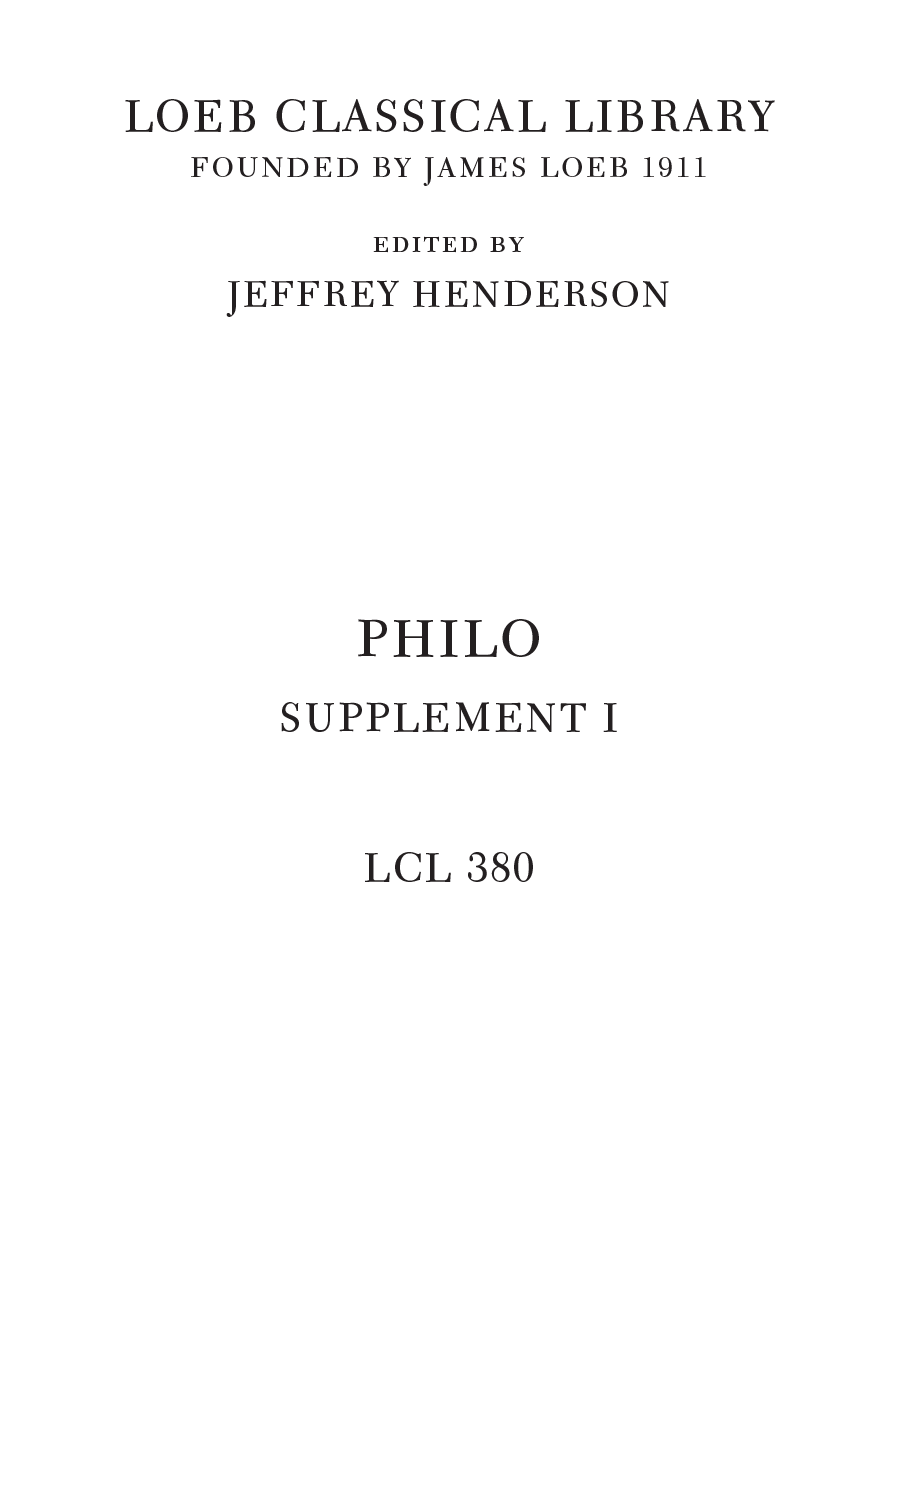 LOEB CLASSICAL LIBRARY FOUNDED BY JAMES LOEB 1911 EDITED BY JEFFREY HENDERSON PHILO SUPPLEMENT I LCL 380